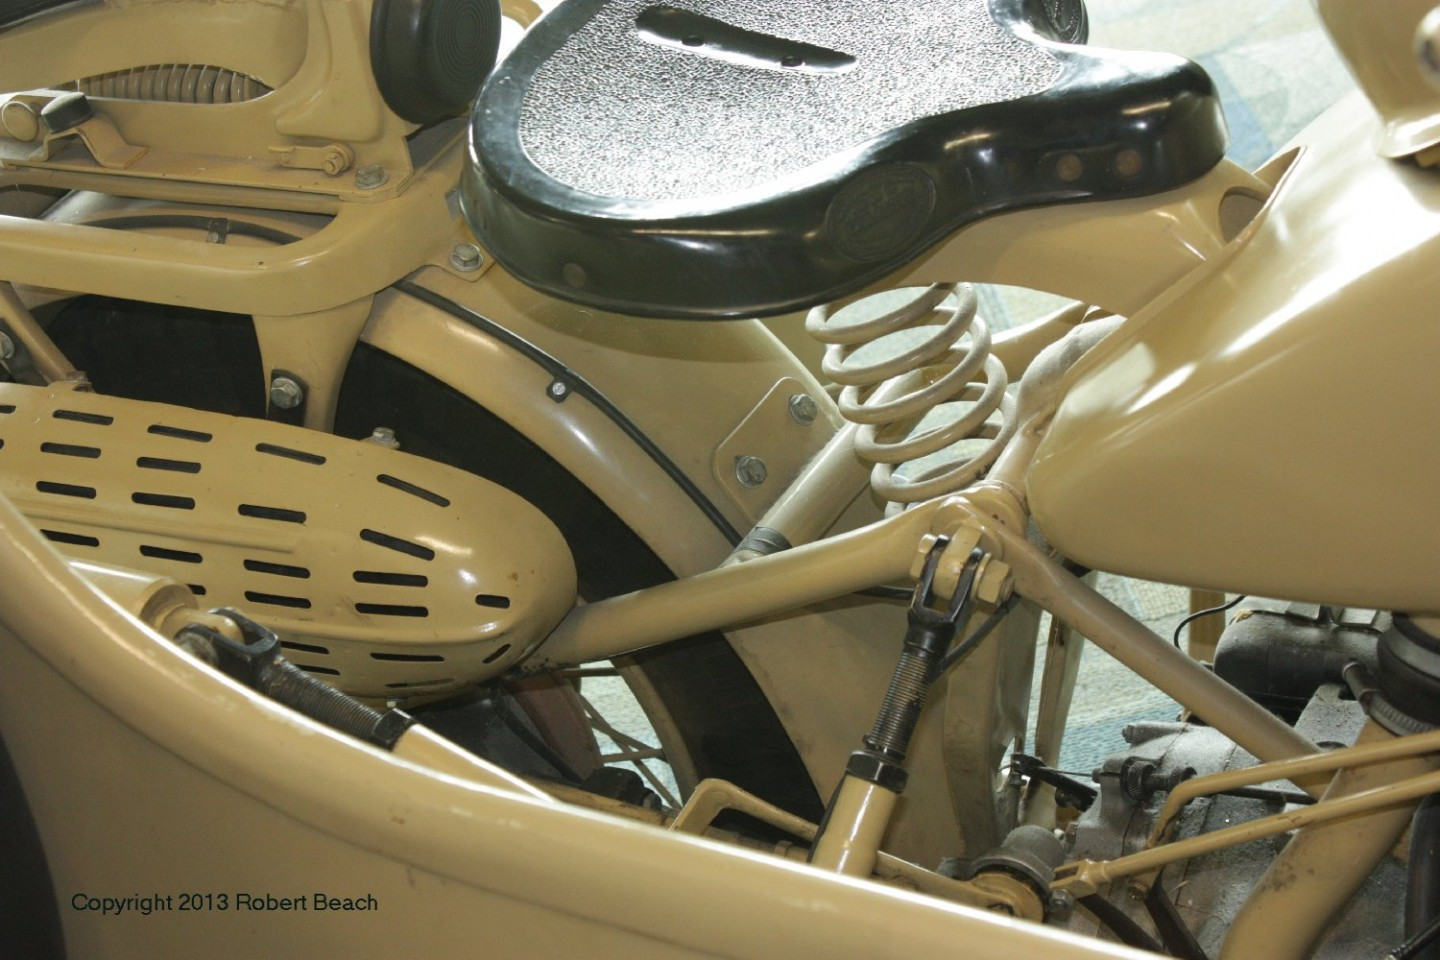 BMW_Mtrcycle_sidecar_cntr_frm rightside